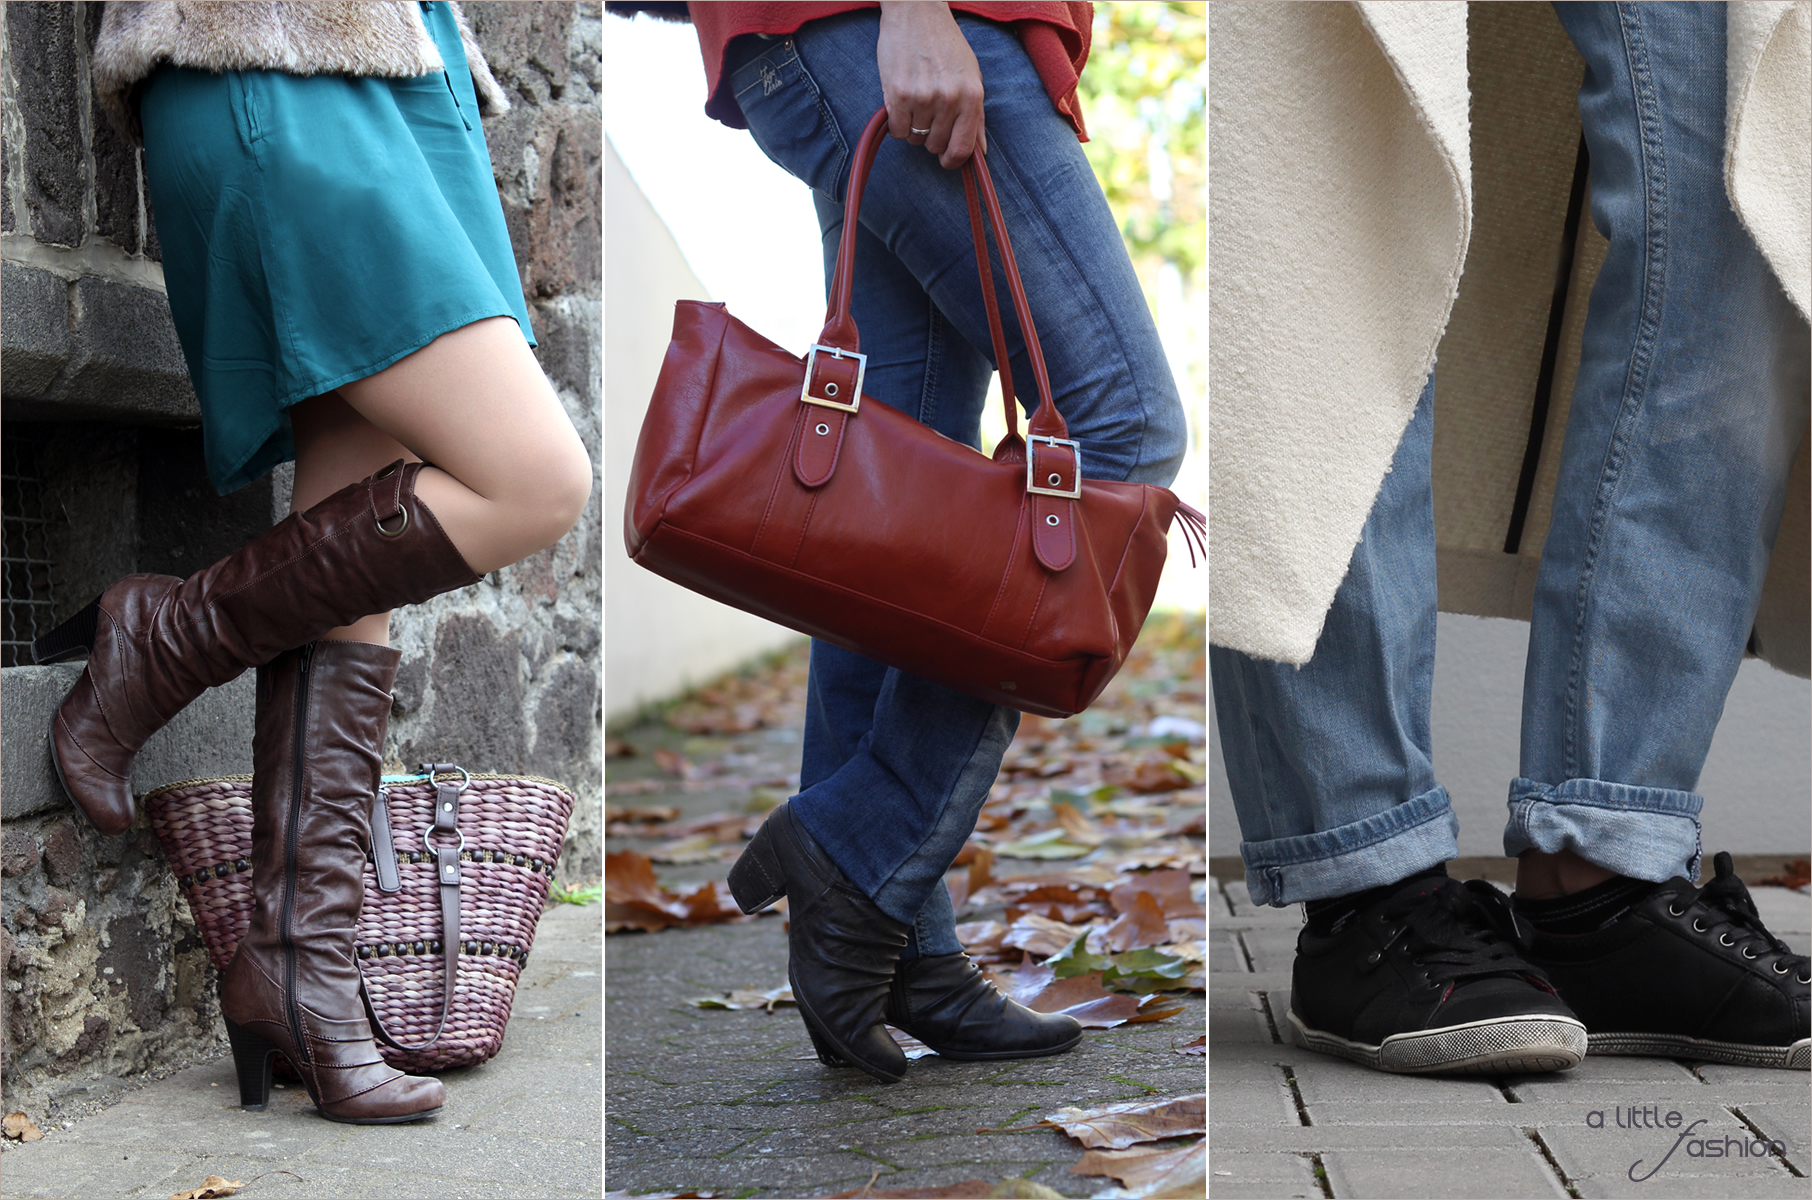 fashion_how-to-wear_schuhe_herbst-winter_alltag_shopping_buero_chic1